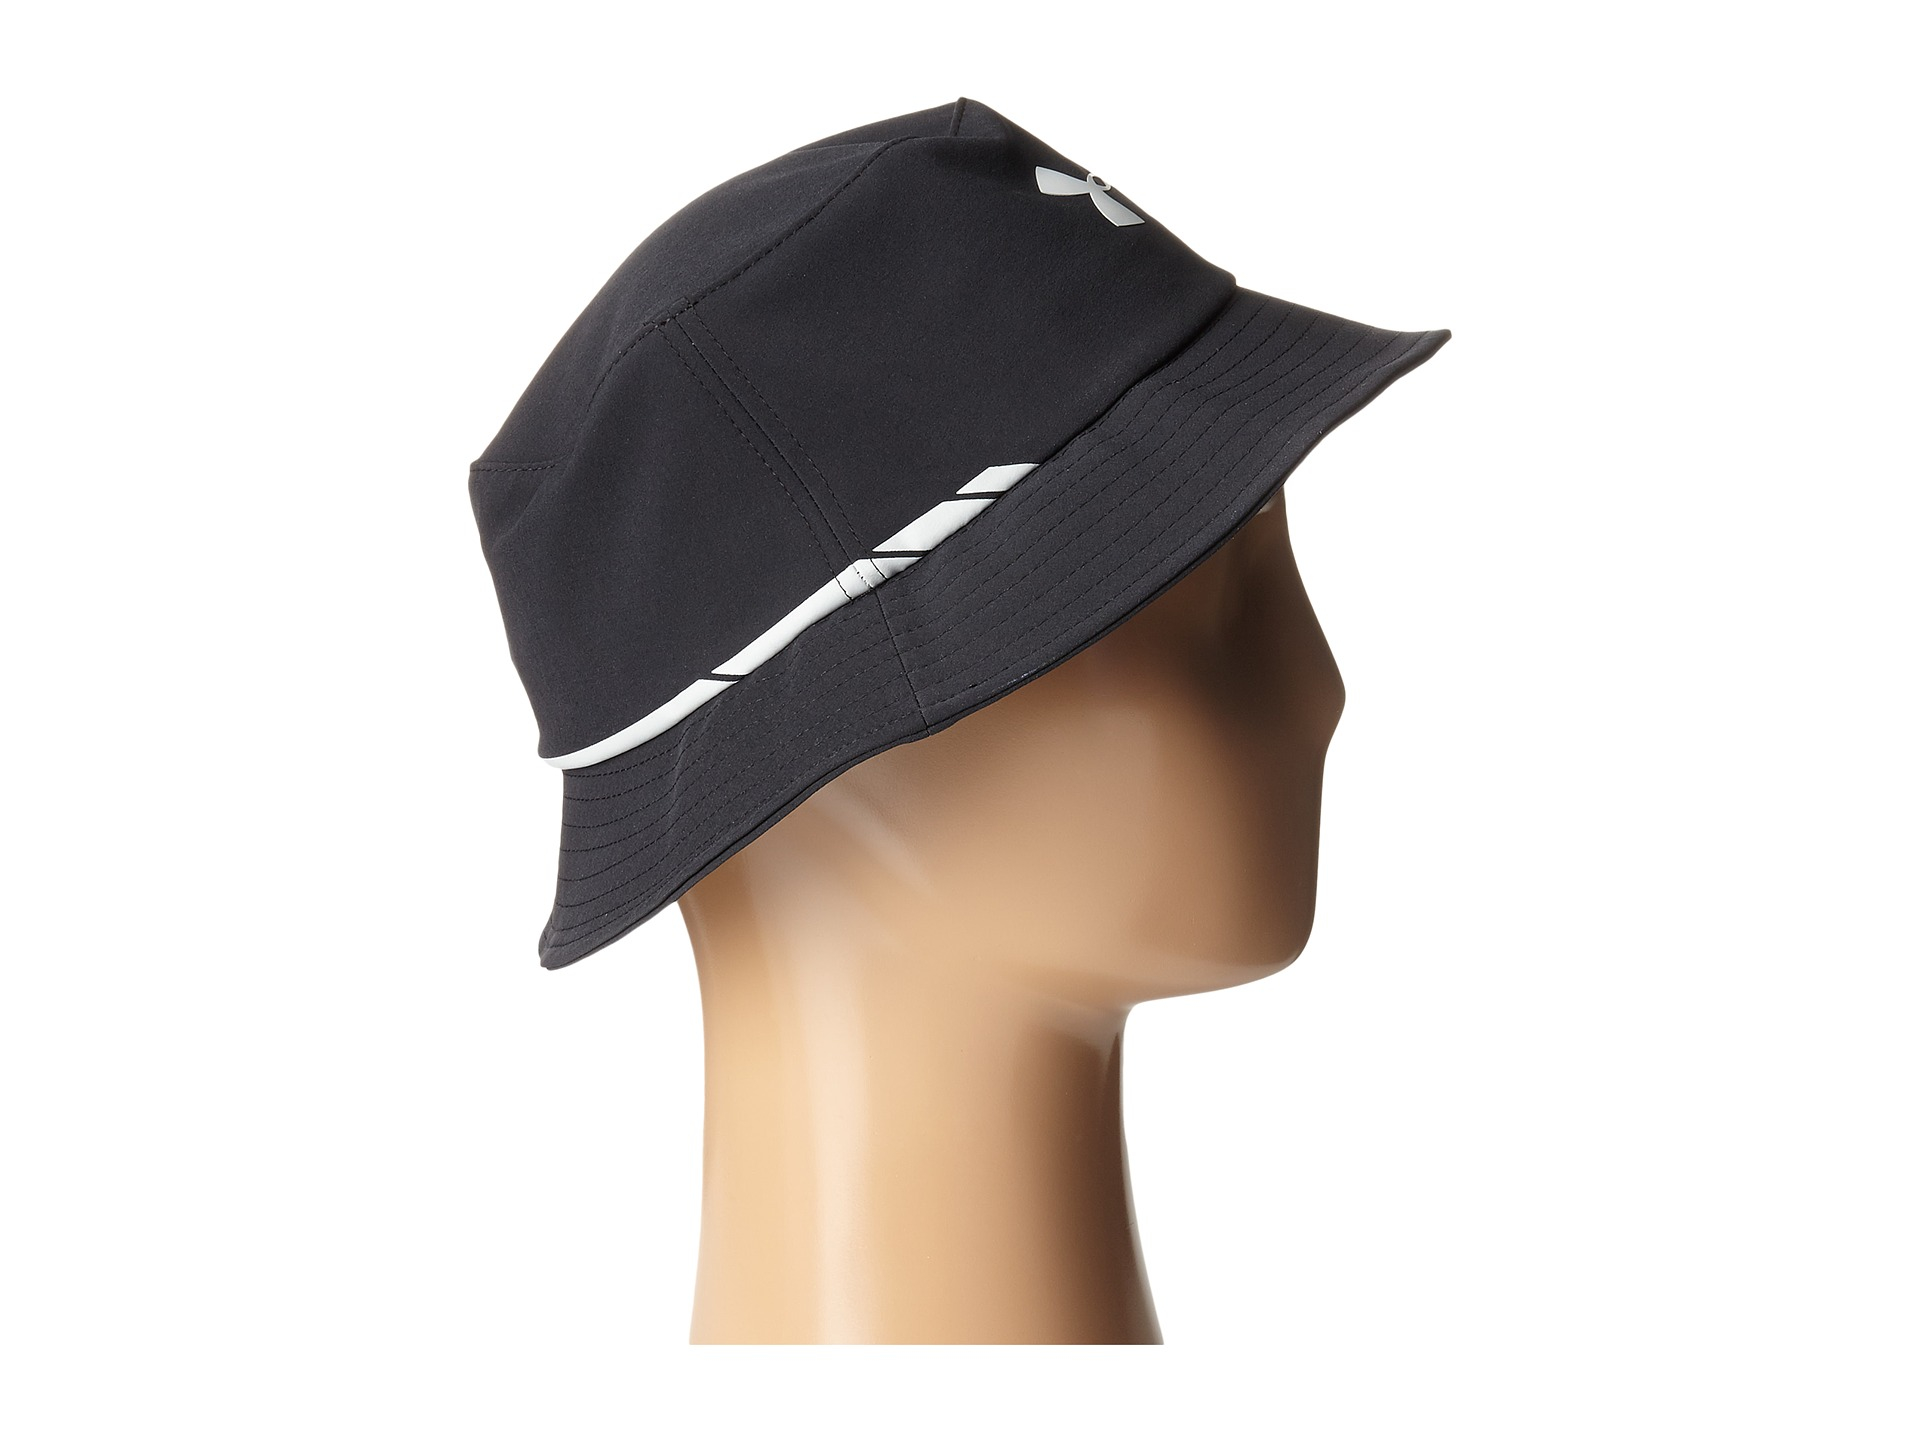 67a6bdd668e Lyst - Under Armour Ua Elements Bucket Hat in Black for Men